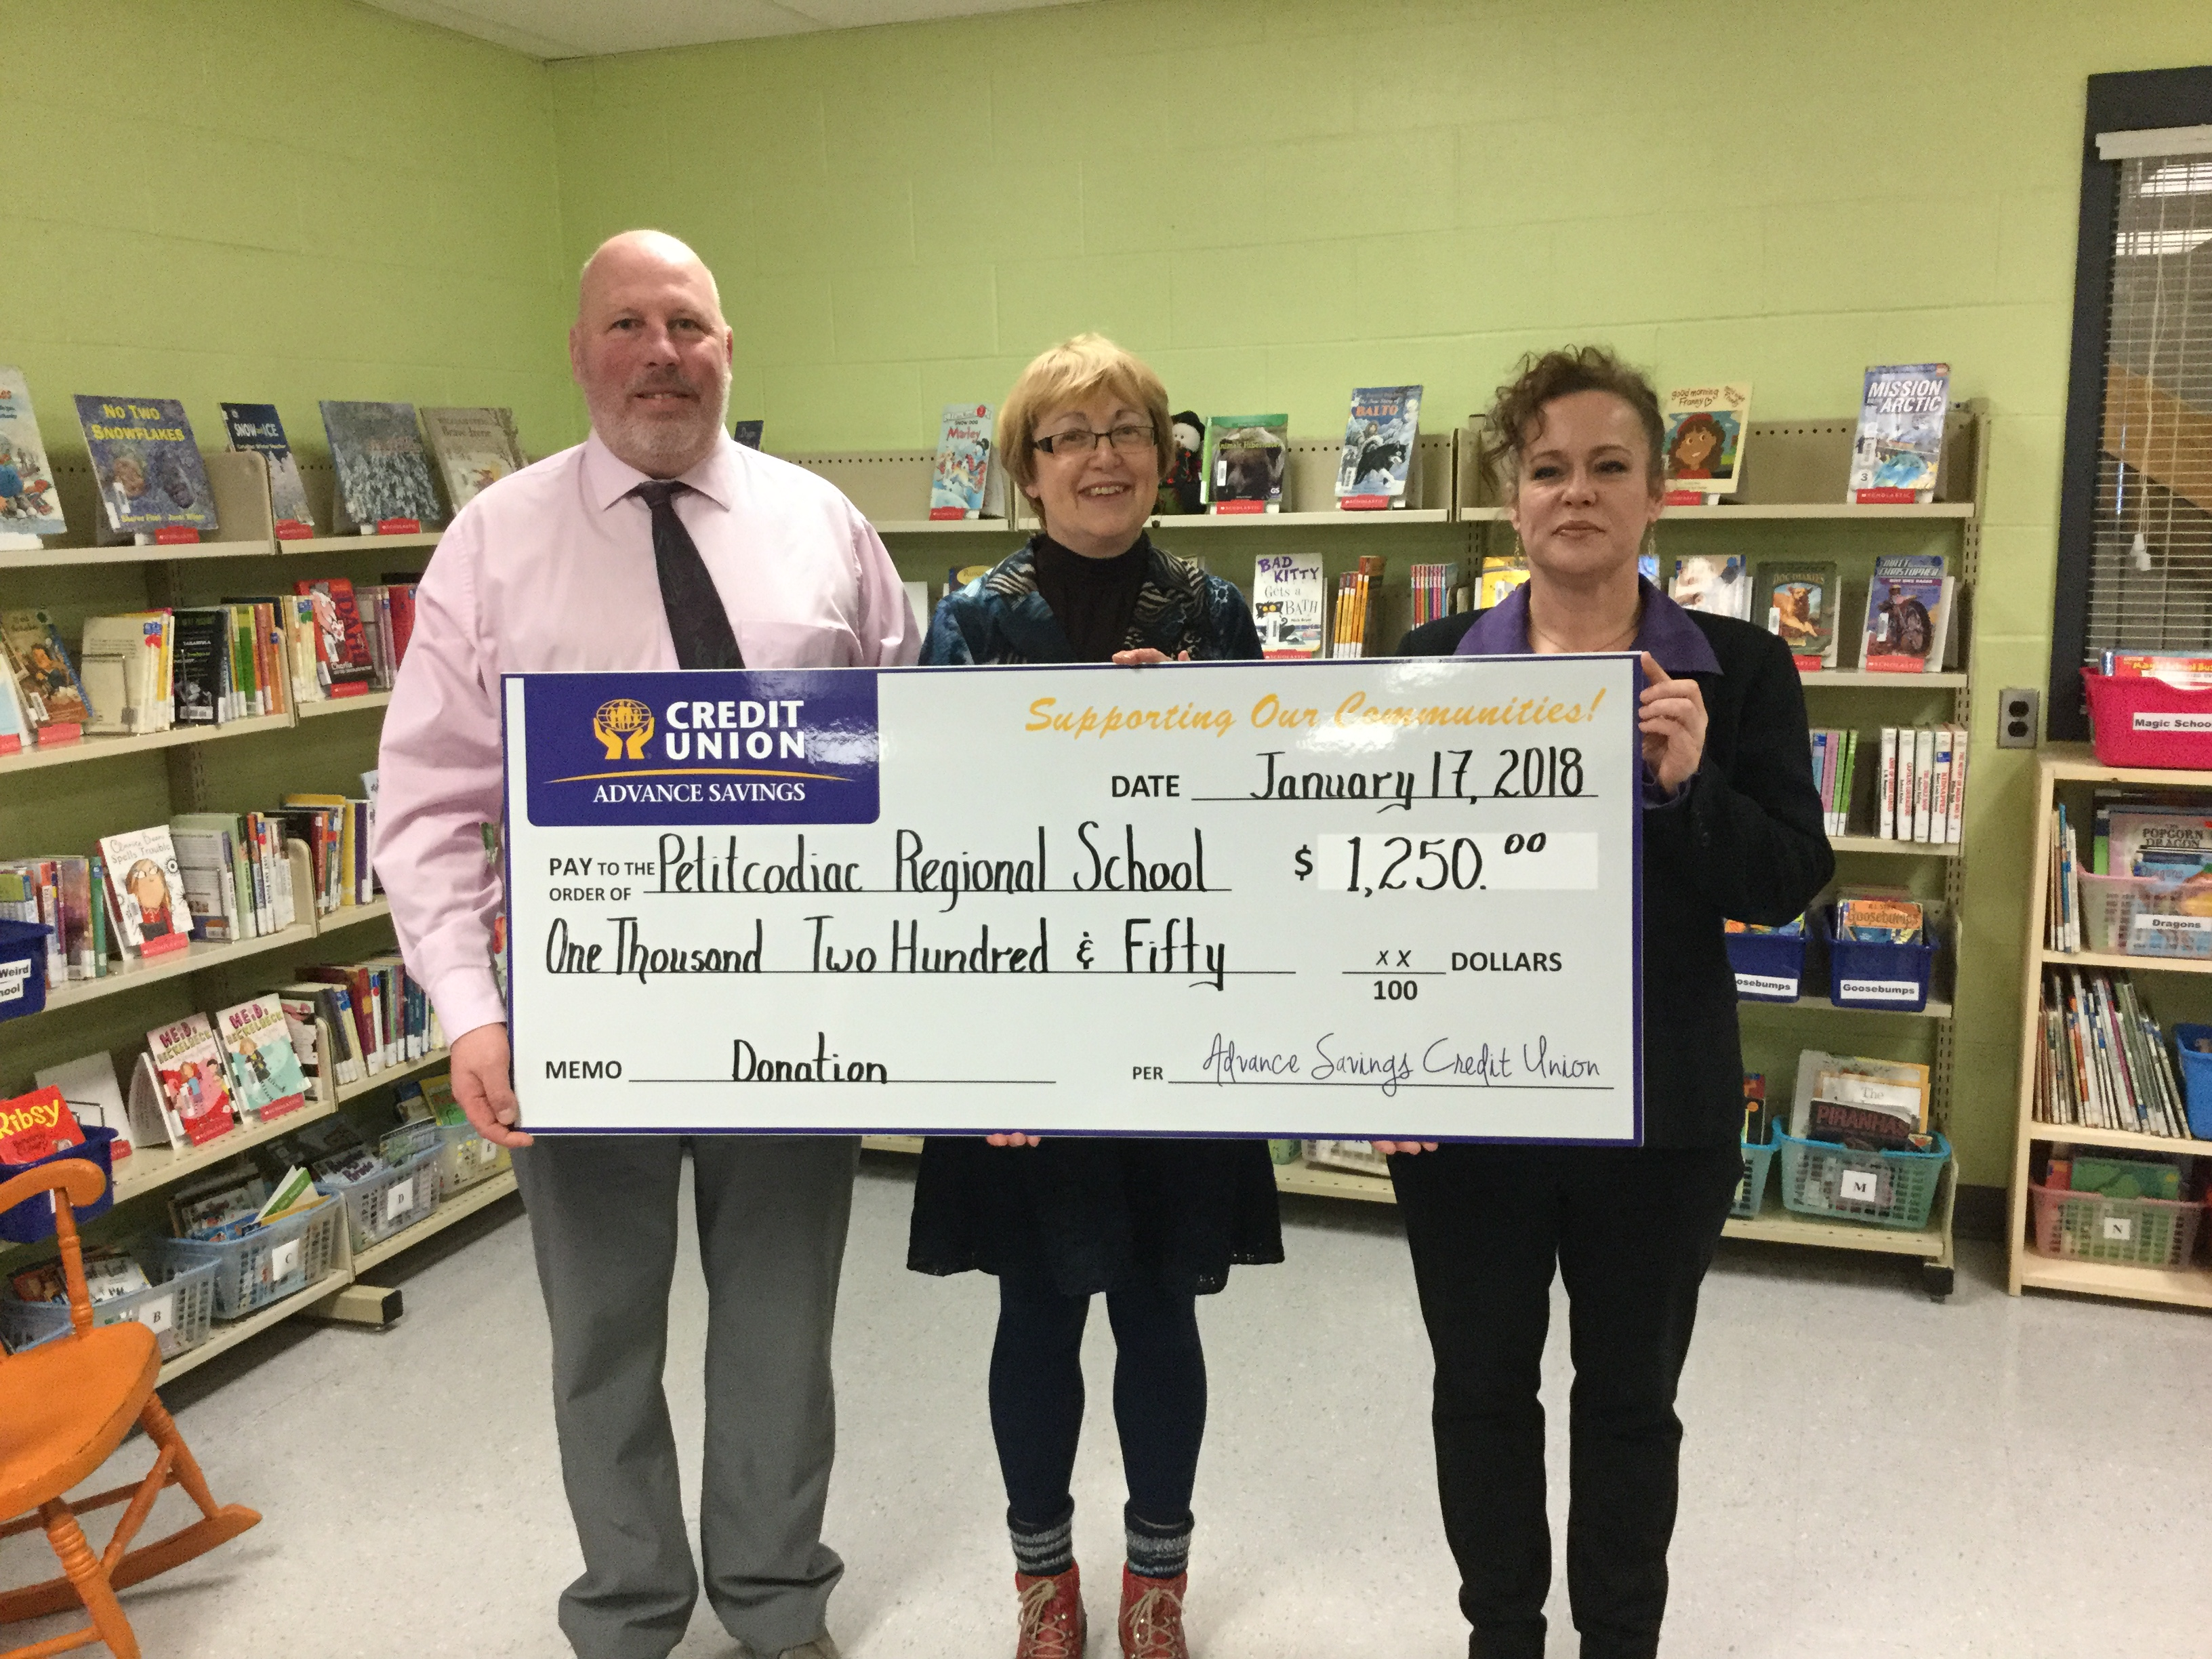 Advance Savings Credit Union Library Donation January 17, 2018.JPG